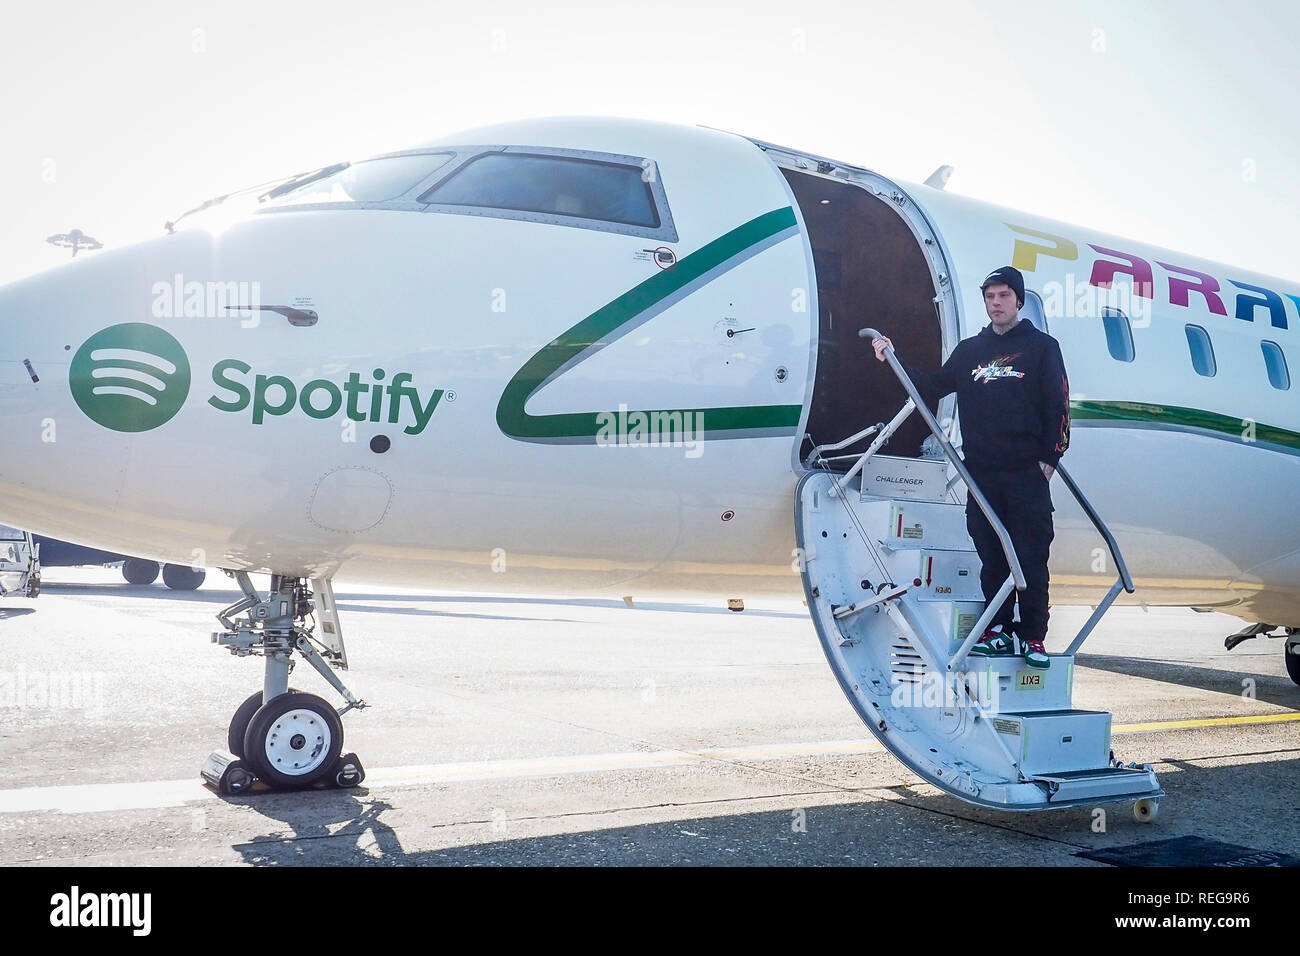 Linate. Fedez presents his new album Paranoia Airlines at the Airport In Foto: Fedez - Stock Image